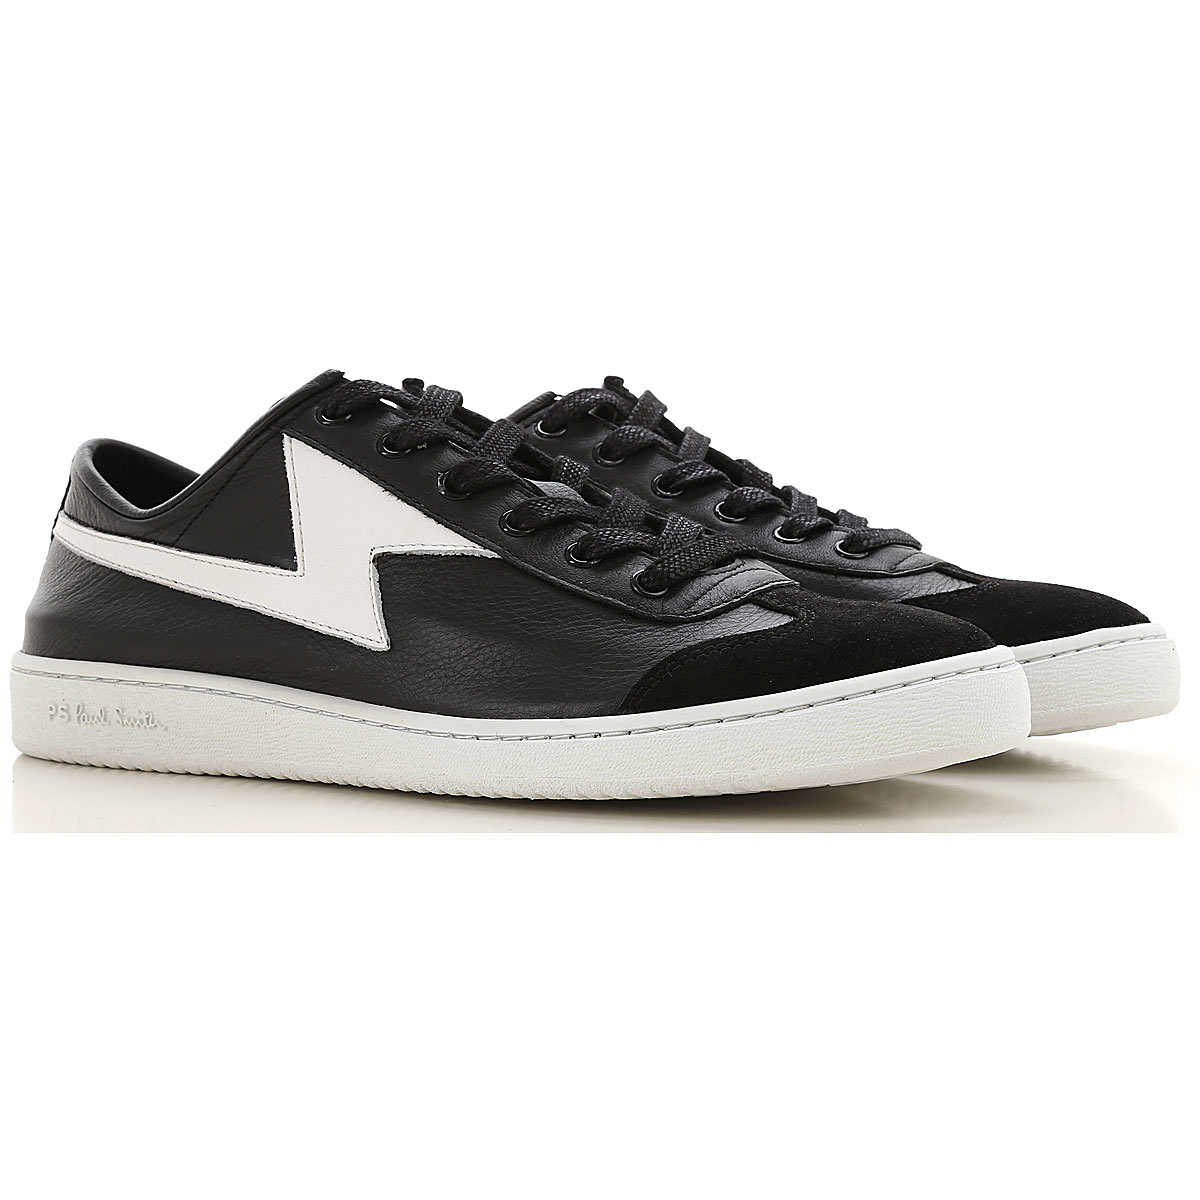 Paul Smith Sneakers for Men On Sale Black - GOOFASH